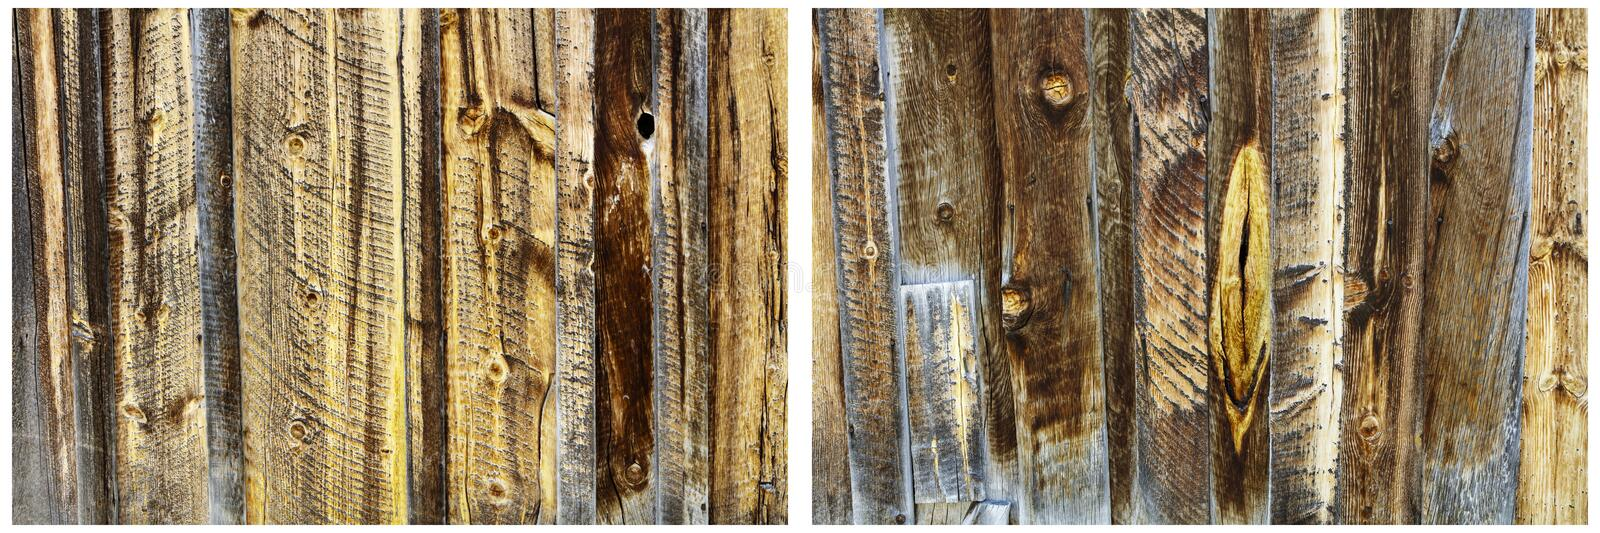 Wood panel wall boards tarnished background collage stock image